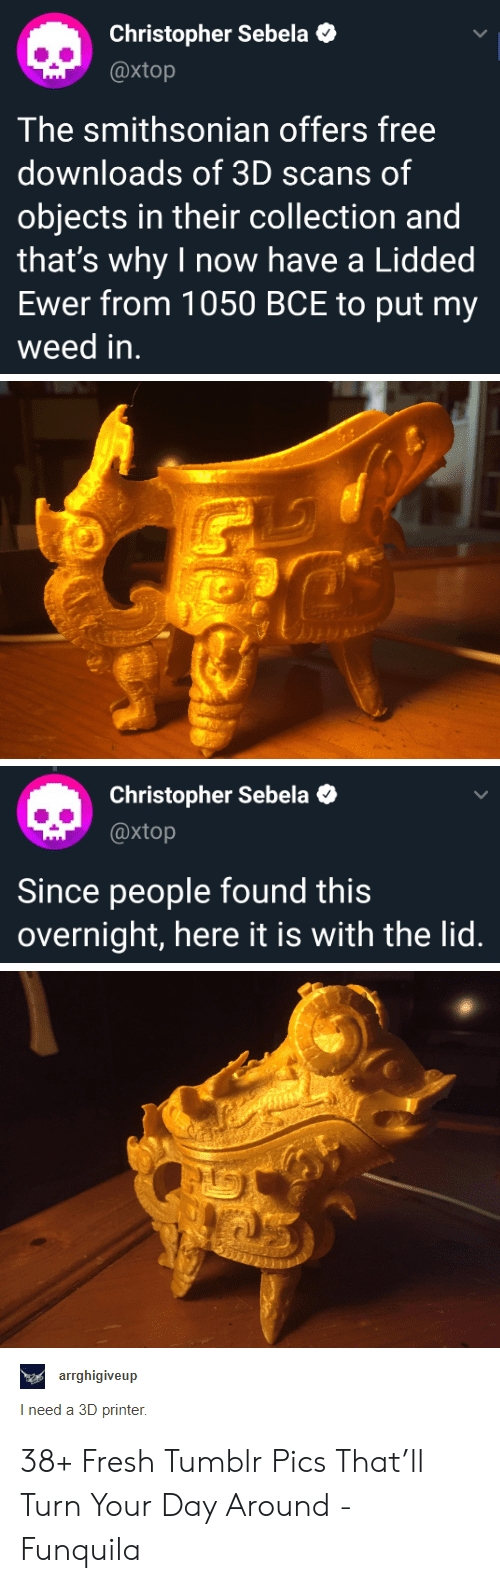 Fresh, Tumblr, and Weed: Christopher Sebela  @xtop  The smithsonian offers free  downloads of 3D scans of  objects in their collection and  that's why I now have a Lidded  Ewer from 1050 BCE to put my  weed in.  Christopher Sebela  @xtop  Since people found this  overnight, here it is with the lid.  aearrghigiveup  I need a 3D printer 38+ Fresh Tumblr Pics That'll Turn Your Day Around - Funquila